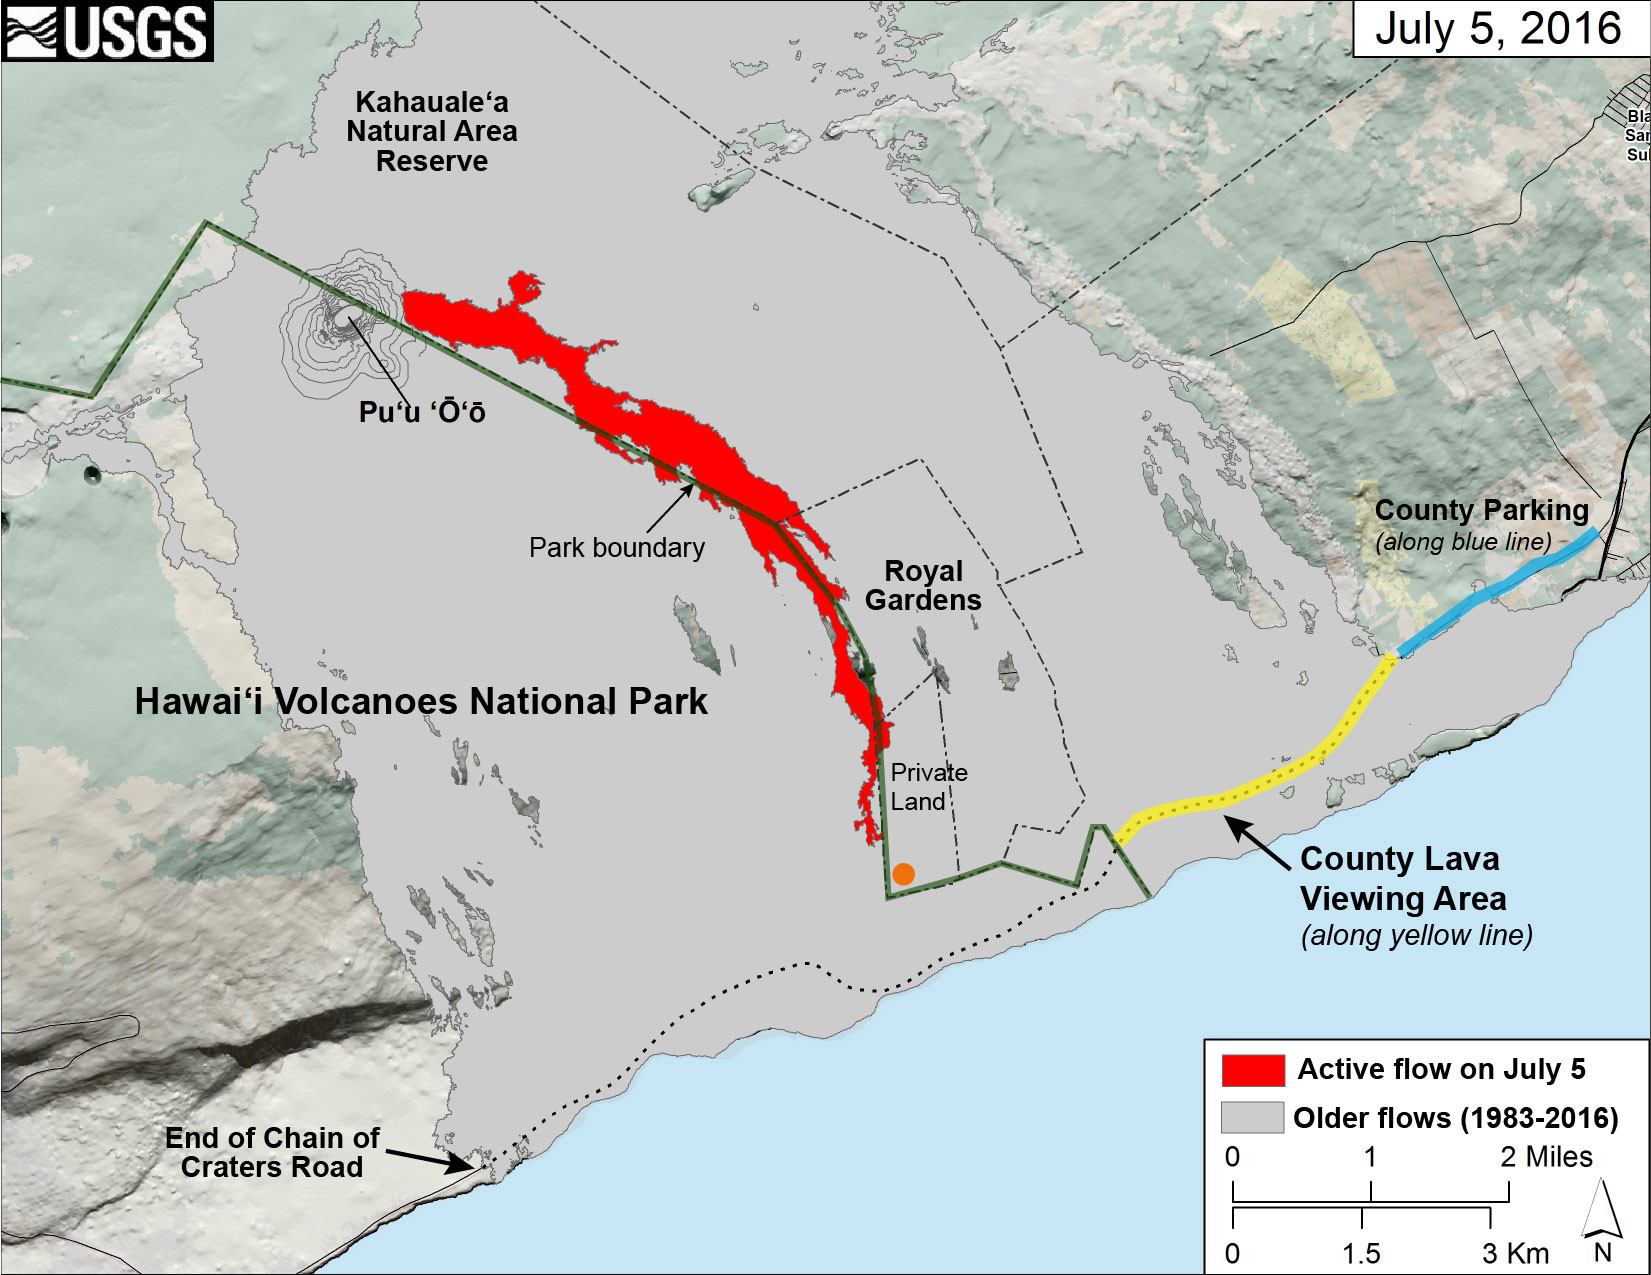 This map of Kīlauea Volcano's lava flow shows the locations of Hawaiʻi County's designated lava-viewing and parking areas (http://www.hawaiicounty.gov/lava-viewing/), as well as the lava flow's location relative to the Hawaiʻi Volcanoes National Park boundary (green line). The full extent of the active lava flow on July 5 is shown in red; an orange dot shows the location of the flow front as of mid-day on July 7. For recent maps and photos of the lava flow, please visit the USGS Hawaiian Volcano Observatory website. USGS graphic.